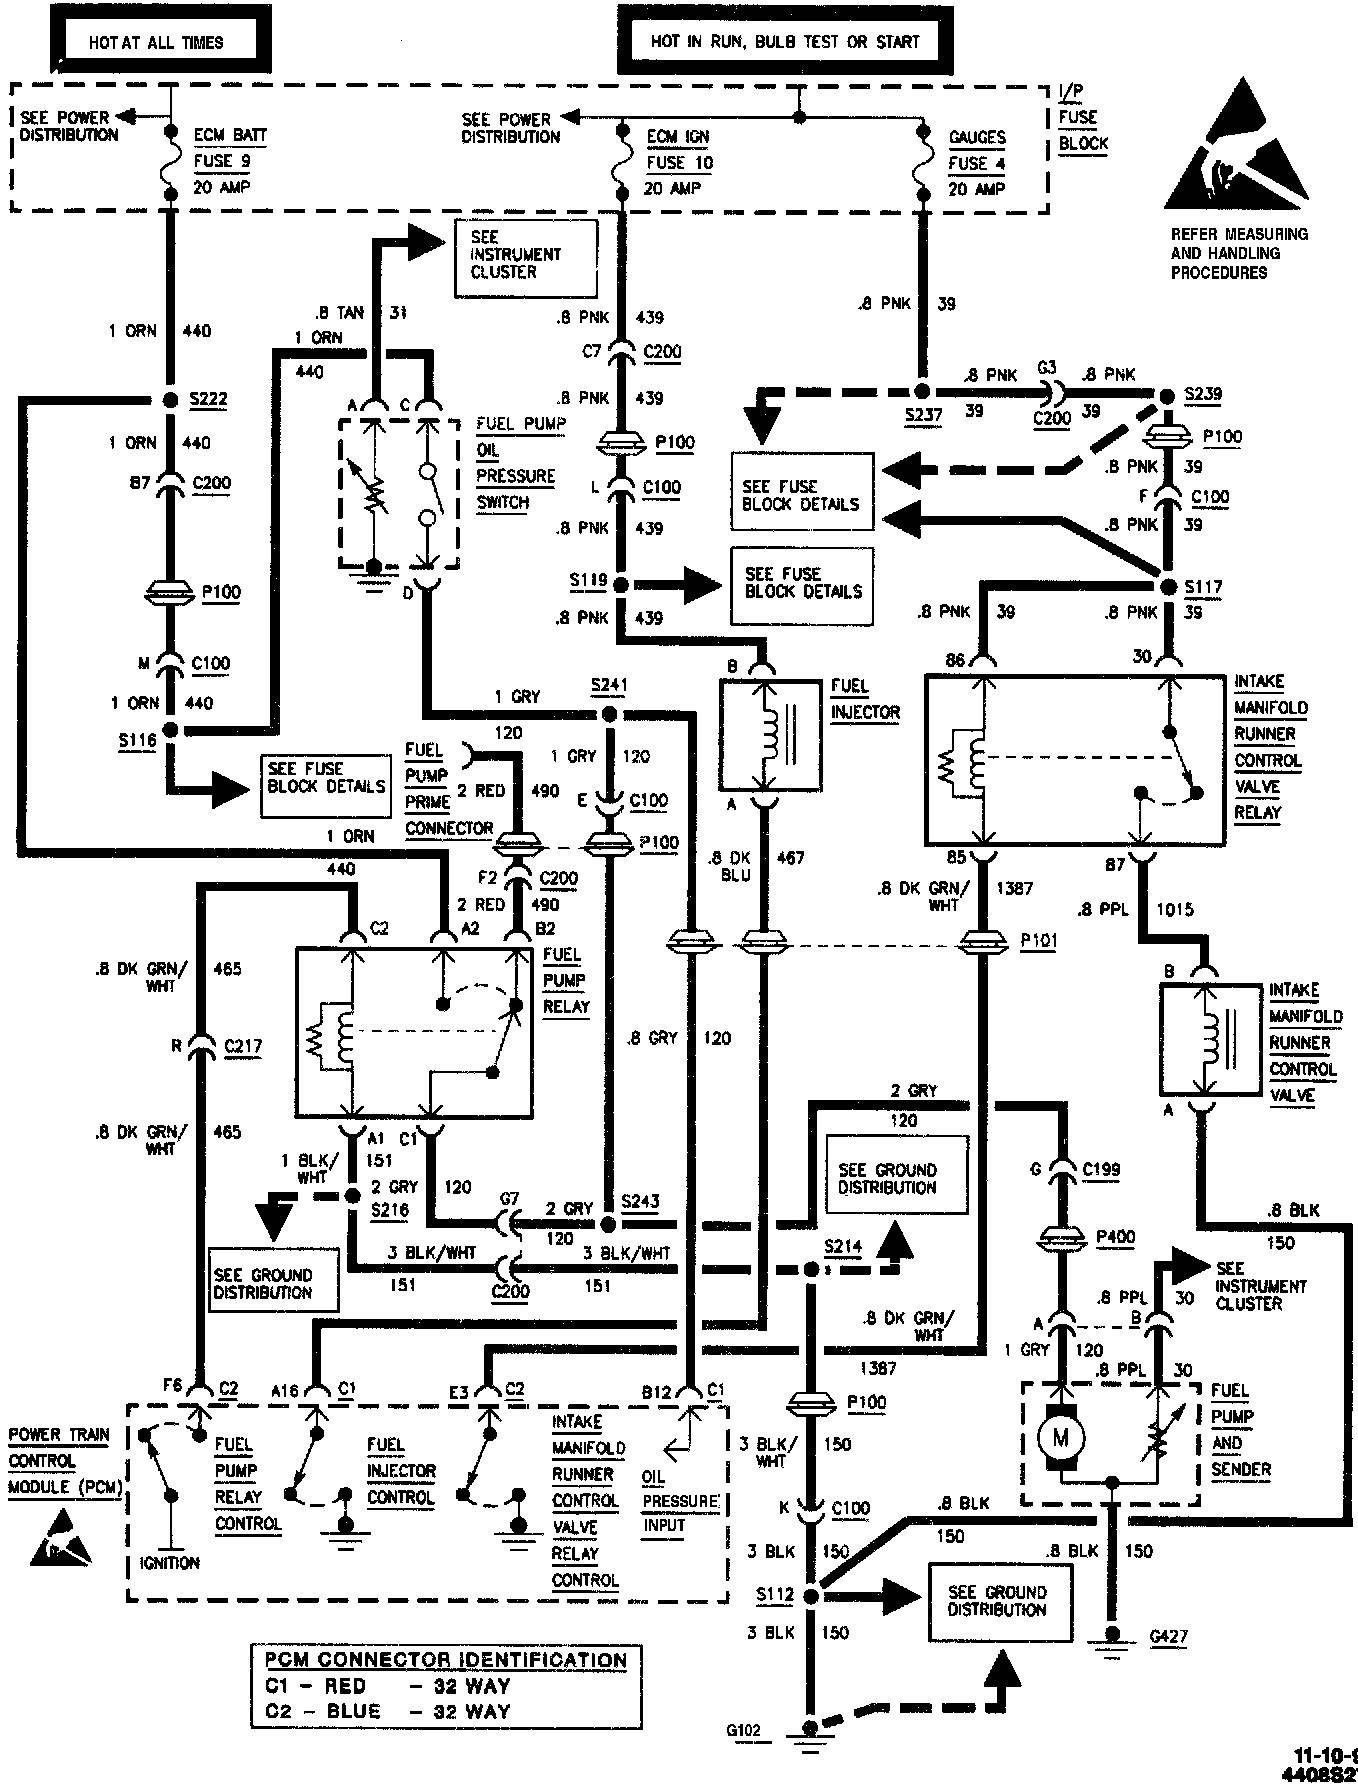 2002 Chevy Trailblazer 4x4 Wiring Diagram Best Wiring Diagram 2002